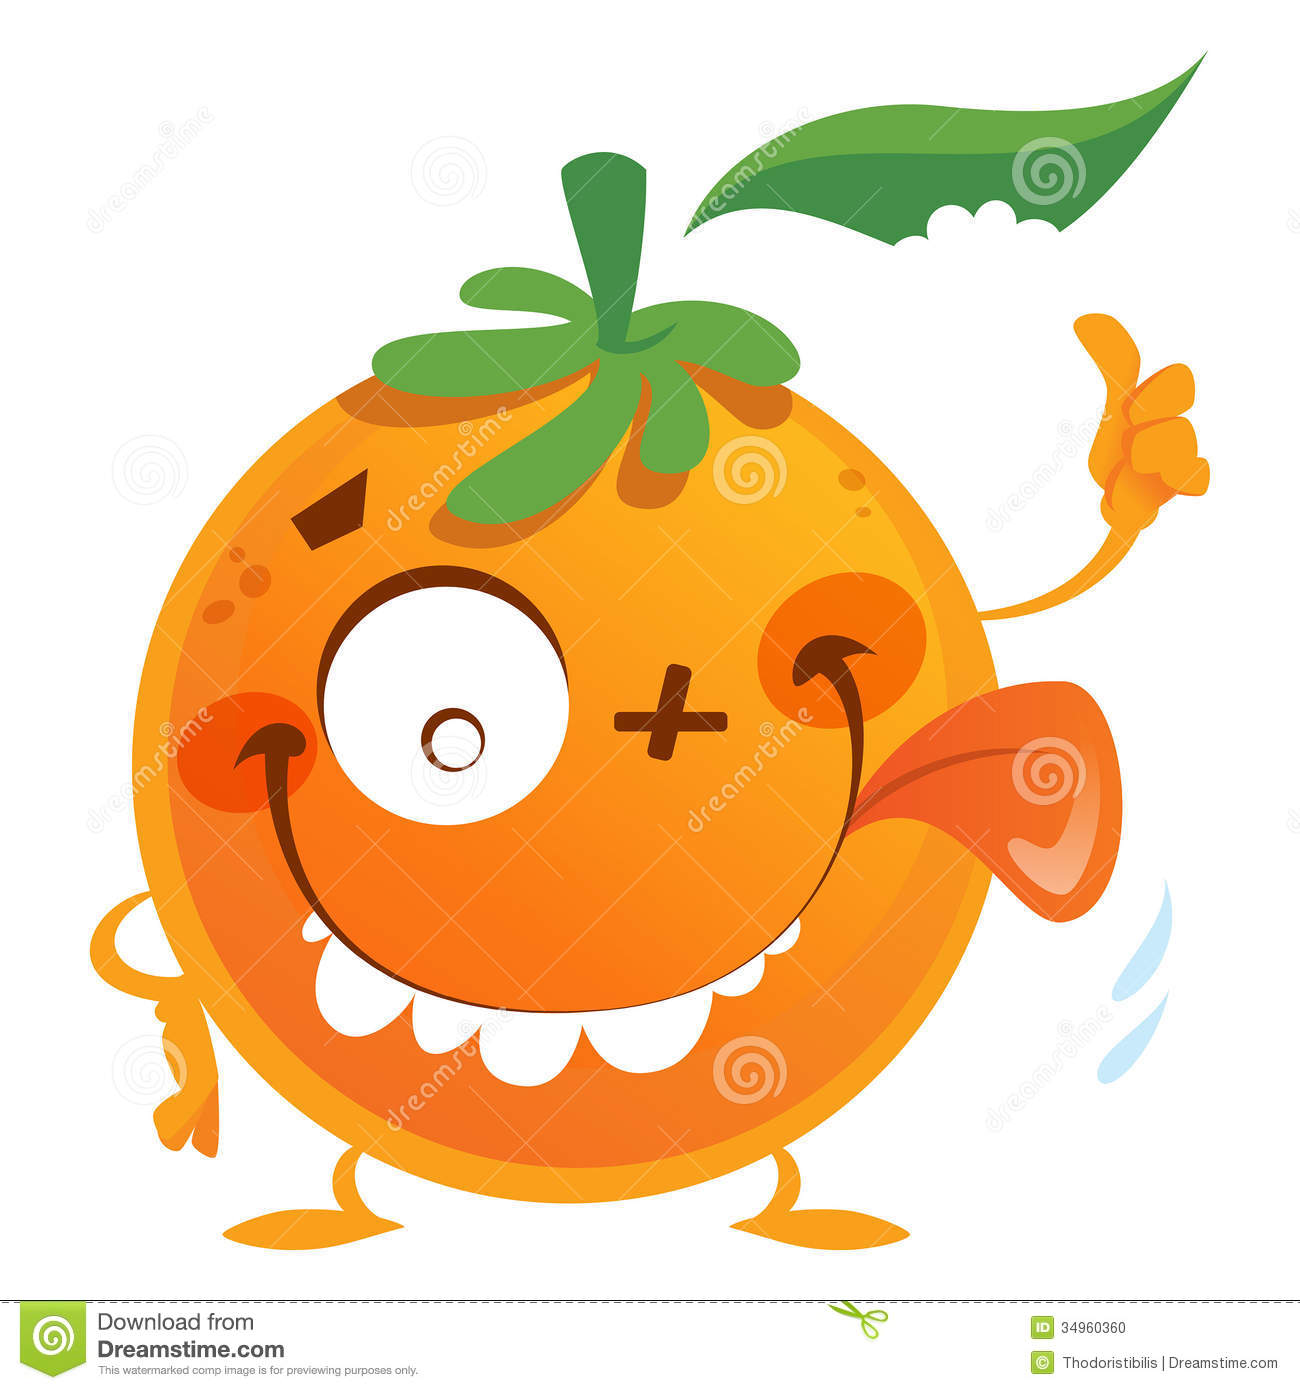 Orange Fruit Cartoon furthermore Stock Vector Orange Juice Cartoon Character Thumbs Up further Stock Photo Crazy Cartoon Orange Fruit Character Making Thumbs Up Gesture Green Leaf Face Tongue Thumb Image34960360 together with Use Math To Make Better Logo Designs The Propositional Density Principle further Stock Images Happy Cartoon Oranges Image24117644. on orange juice cartoon character